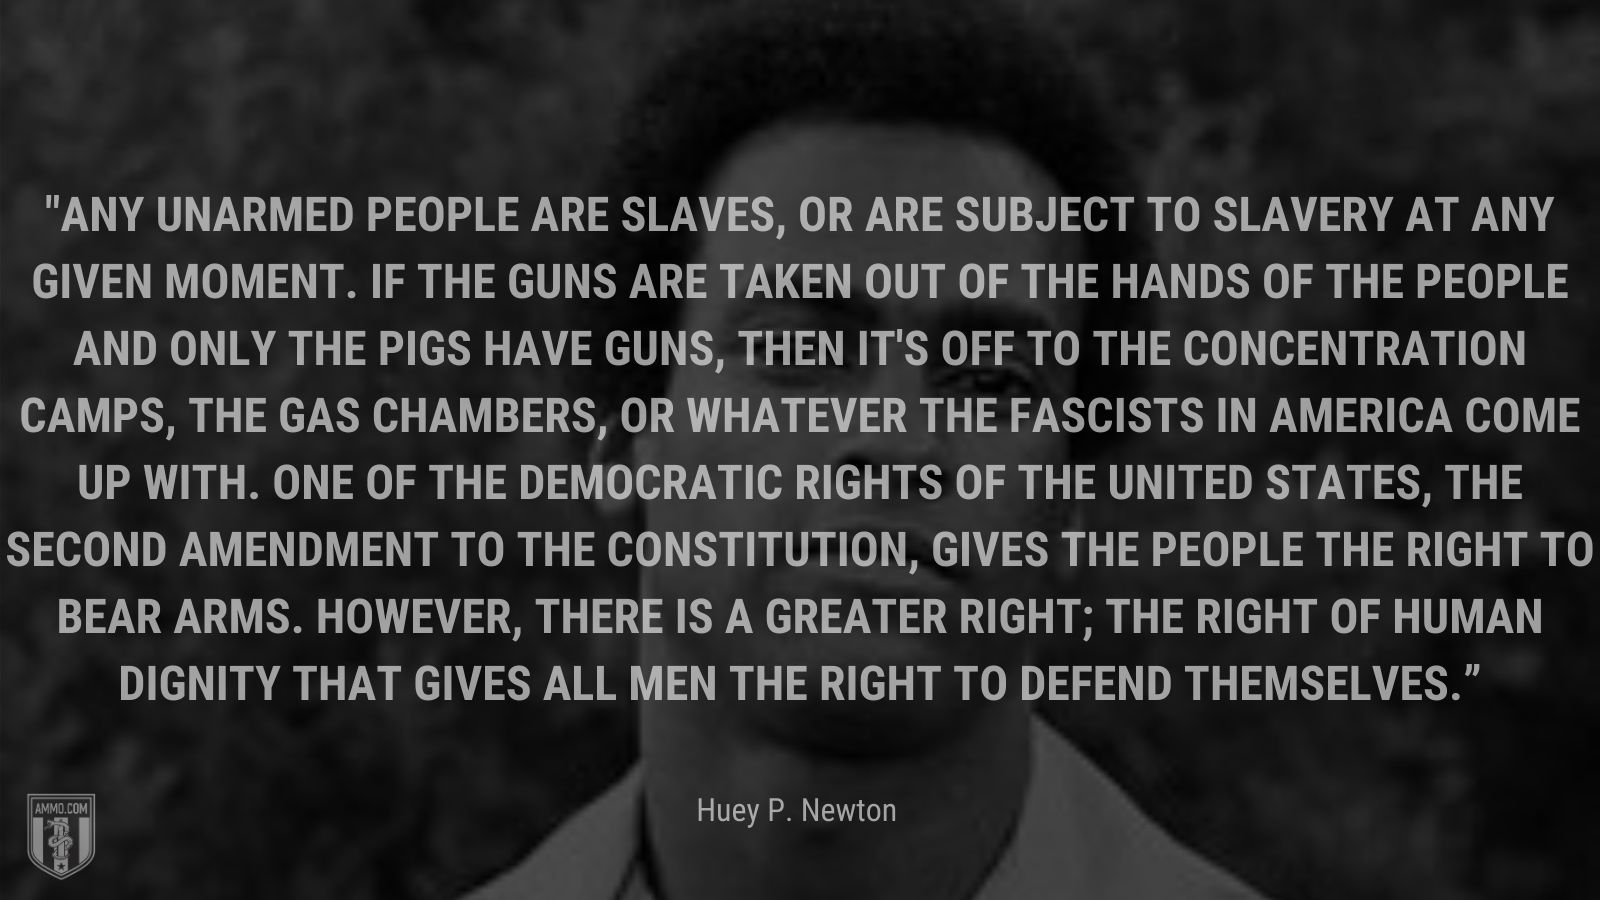 """""""Any unarmed people are slaves, or are subject to slavery at any given moment. If the guns are taken out of the hands of the people and only the pigs have guns, then it's off to the concentration camps, the gas chambers, or whatever the fascists in America come up with. One of the democratic rights of the United States, the Second Amendment to the Constitution, gives the people the right to bear arms. However, there is a greater right; the right of human dignity that gives all men the right to defend themselves."""" - Huey P. Newton"""